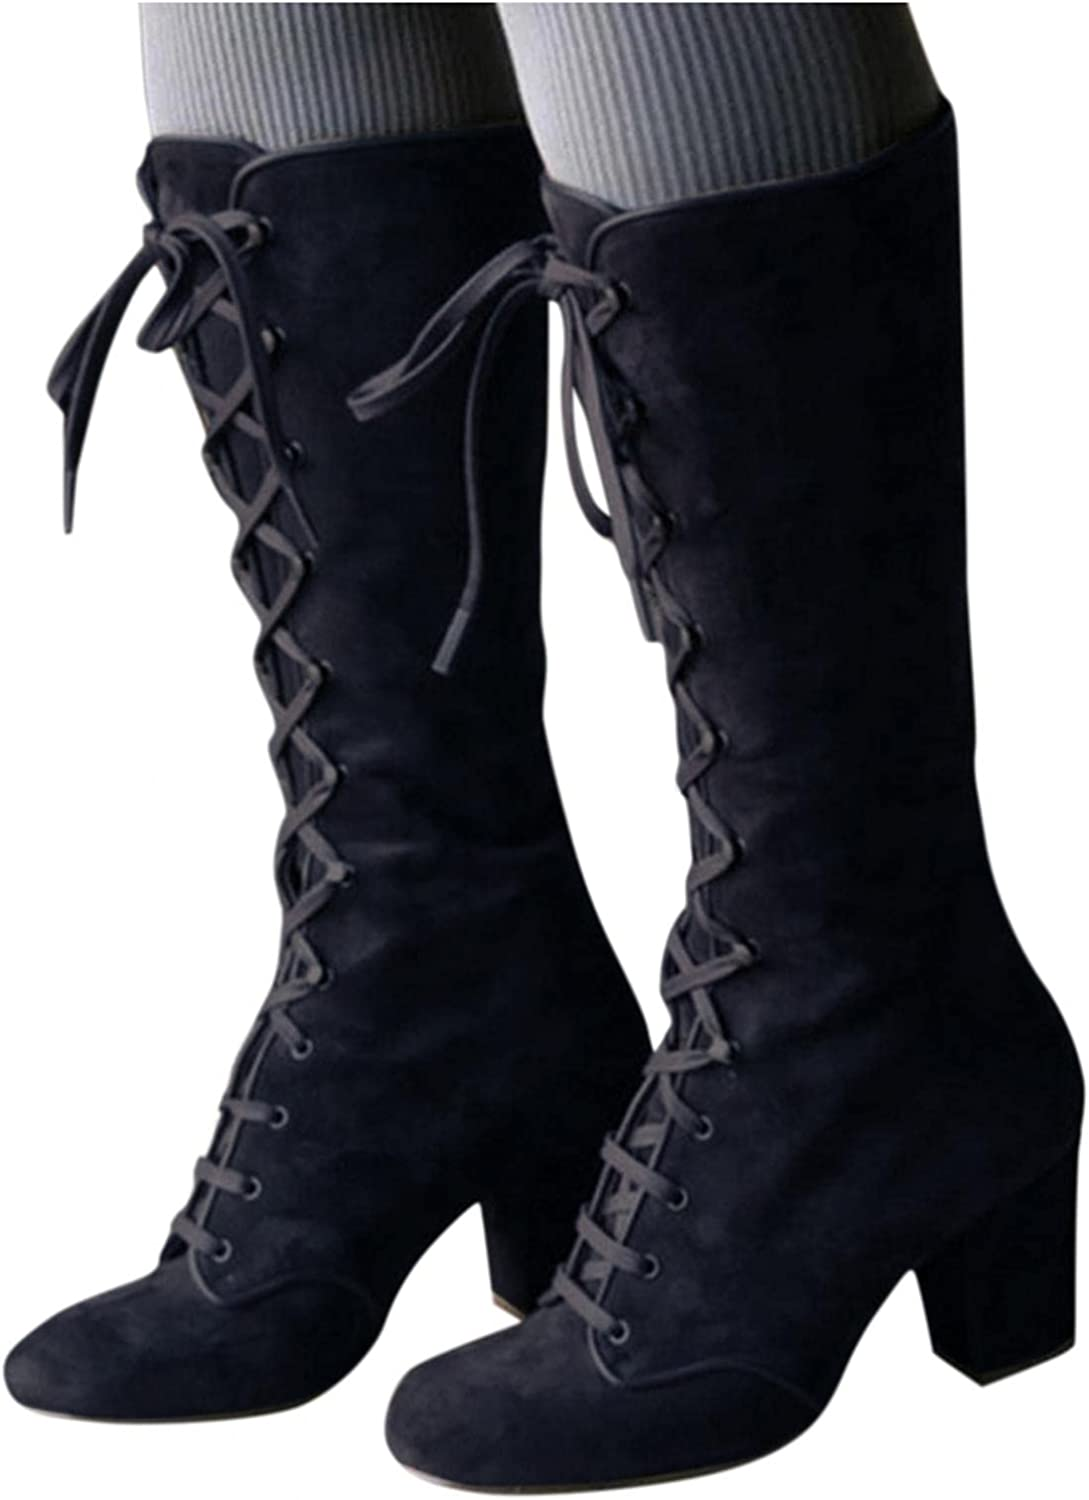 Cowboy Boots for Women,Womens Mid-Calf Boots Retro Lace-Up Booties Midi Block Heels Round Toe Outdoor Wedge Roman Shoes